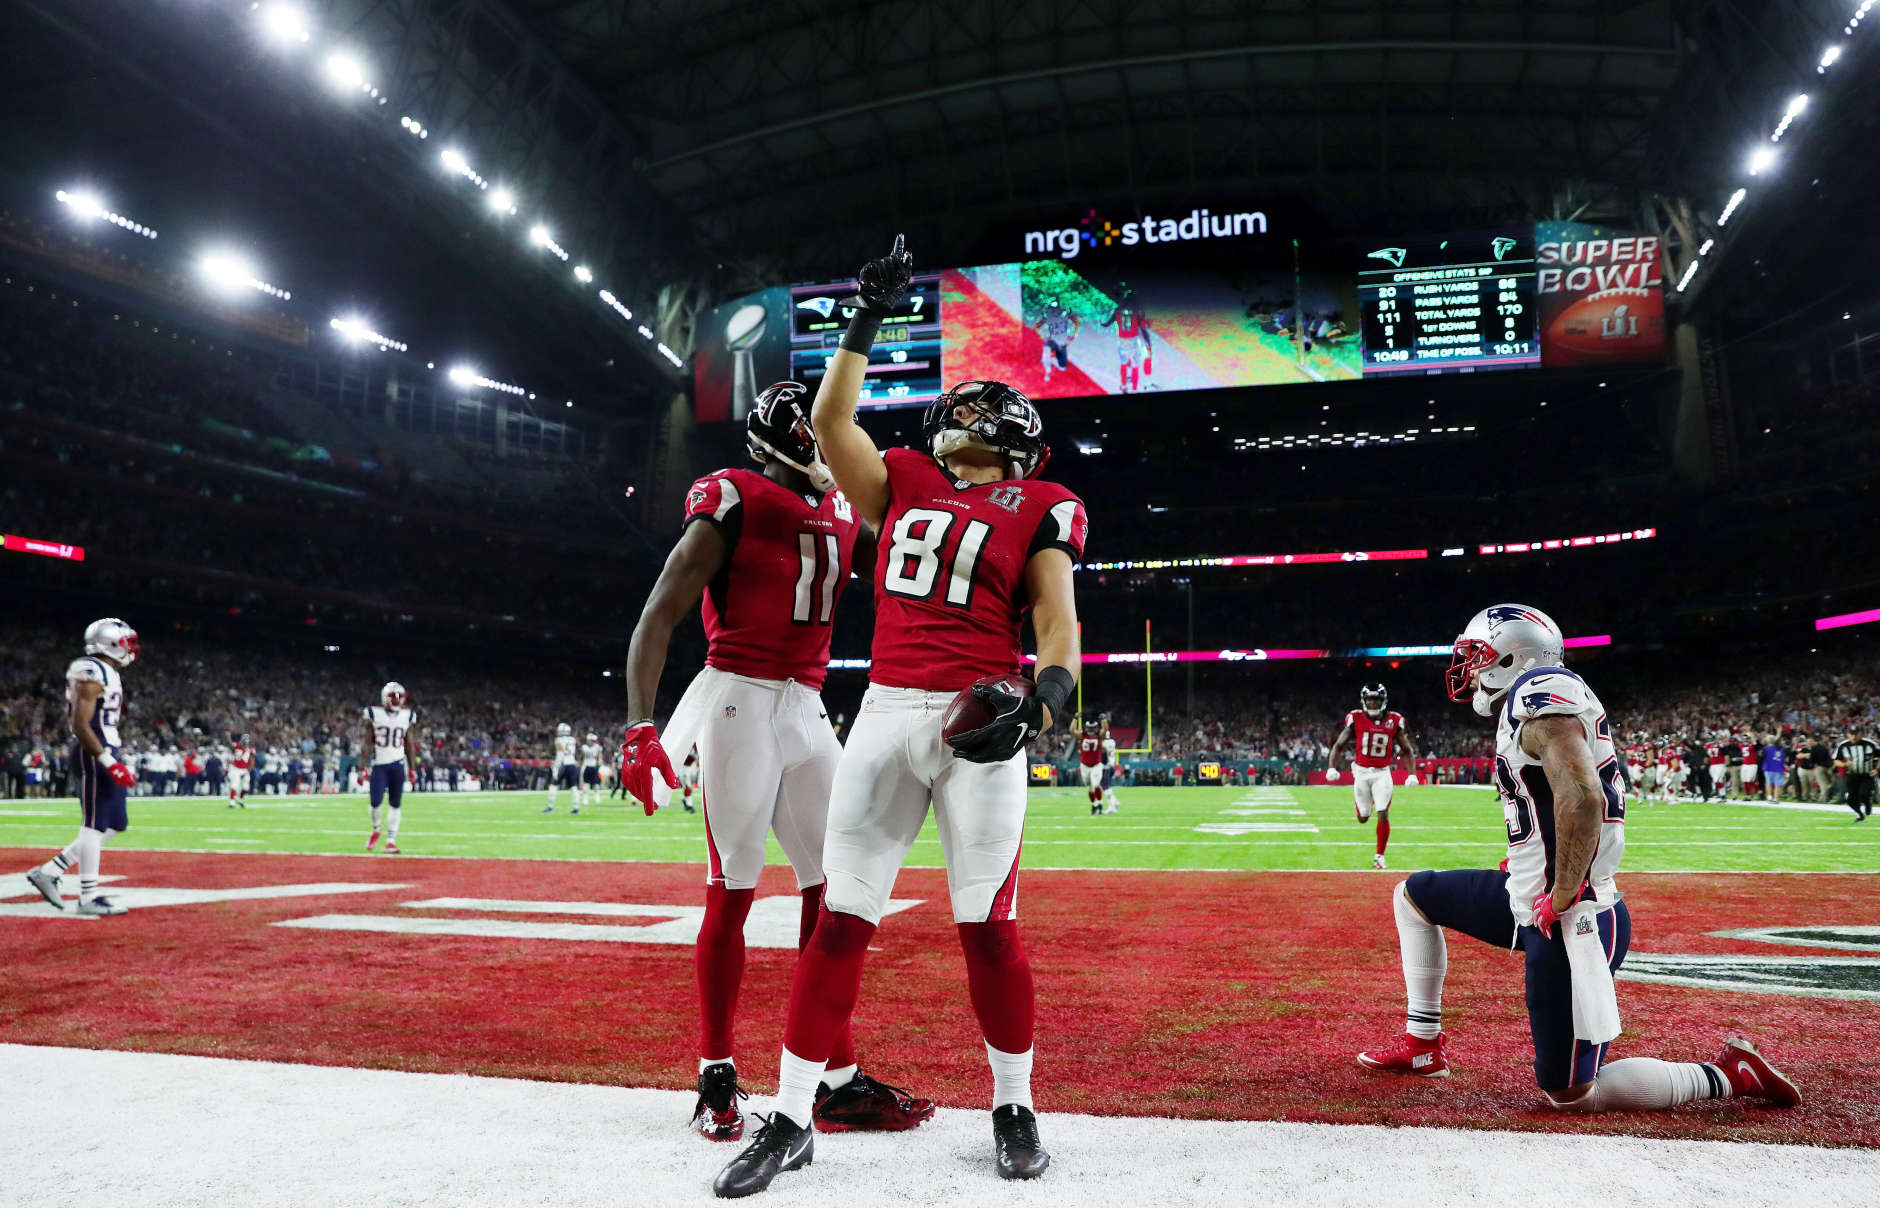 HOUSTON, TX - FEBRUARY 05:  Austin Hooper #81 of the Atlanta Falcons reacts after scoring a touchdown on a 19 yard pass against the New England Patriots in the second quarter during Super Bowl 51 at NRG Stadium on February 5, 2017 in Houston, Texas.  (Photo by Tom Pennington/Getty Images)